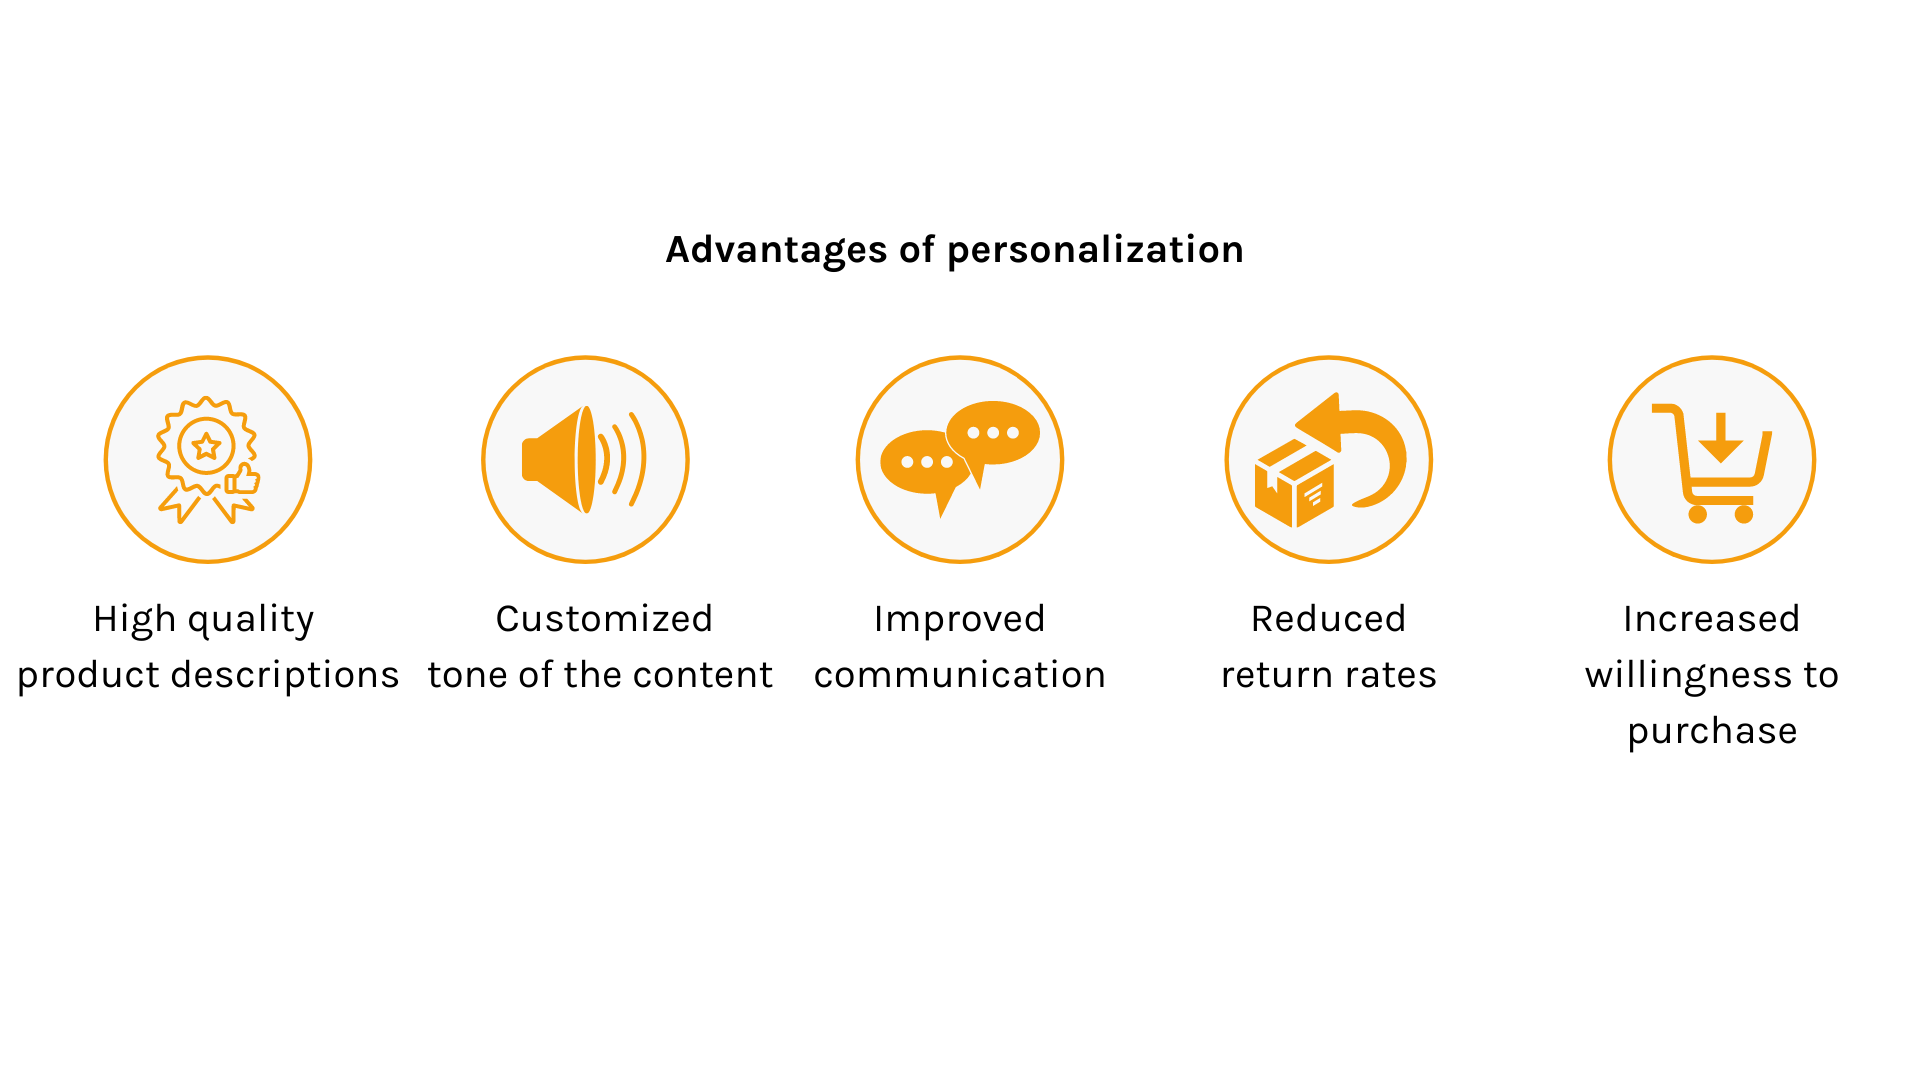 Advantages of personalization